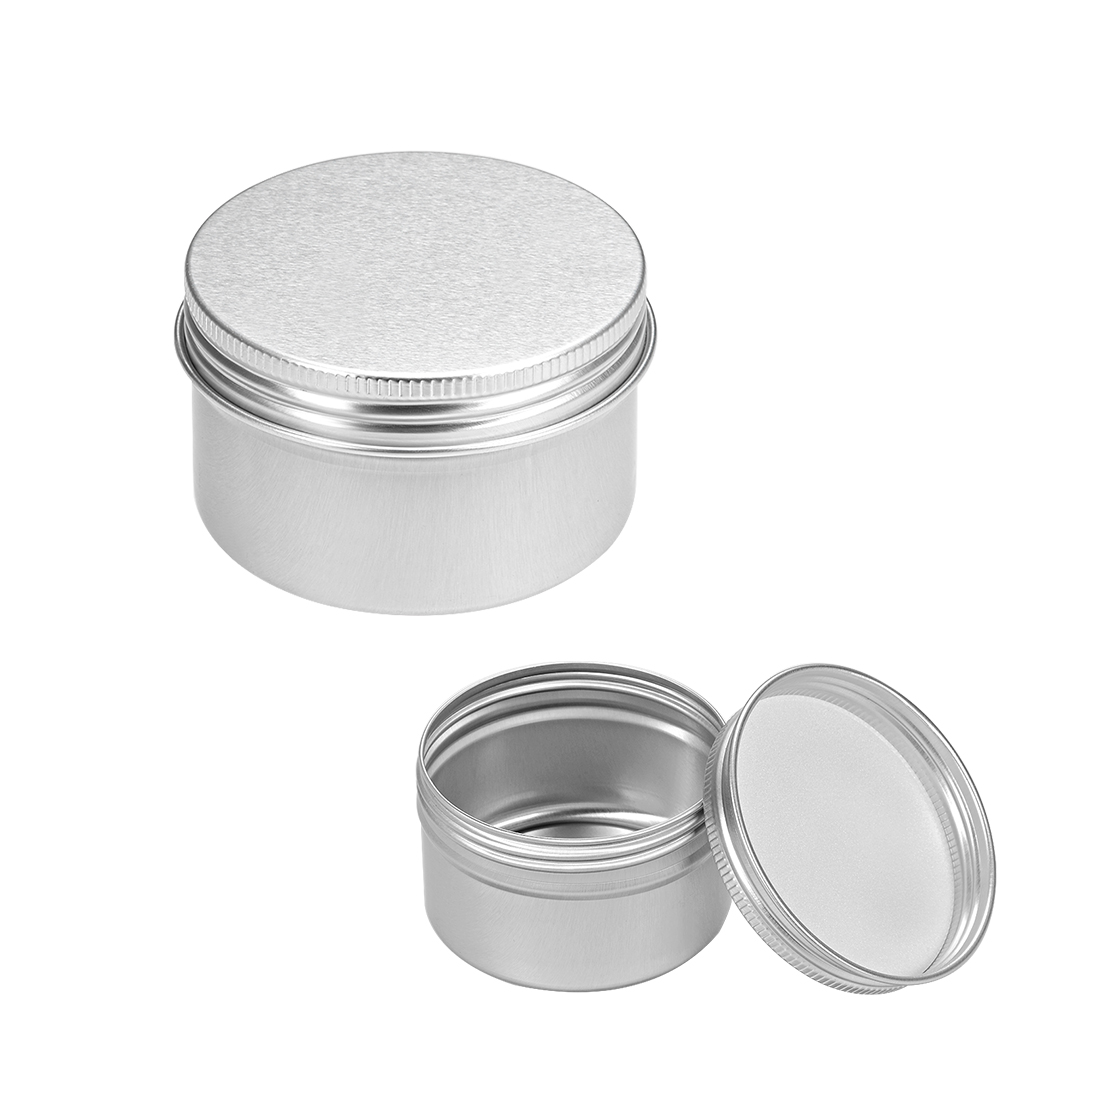 2.7 oz Round Aluminum Cans Tin Can Screw Top Metal Lid Containers 80ml 6pcs